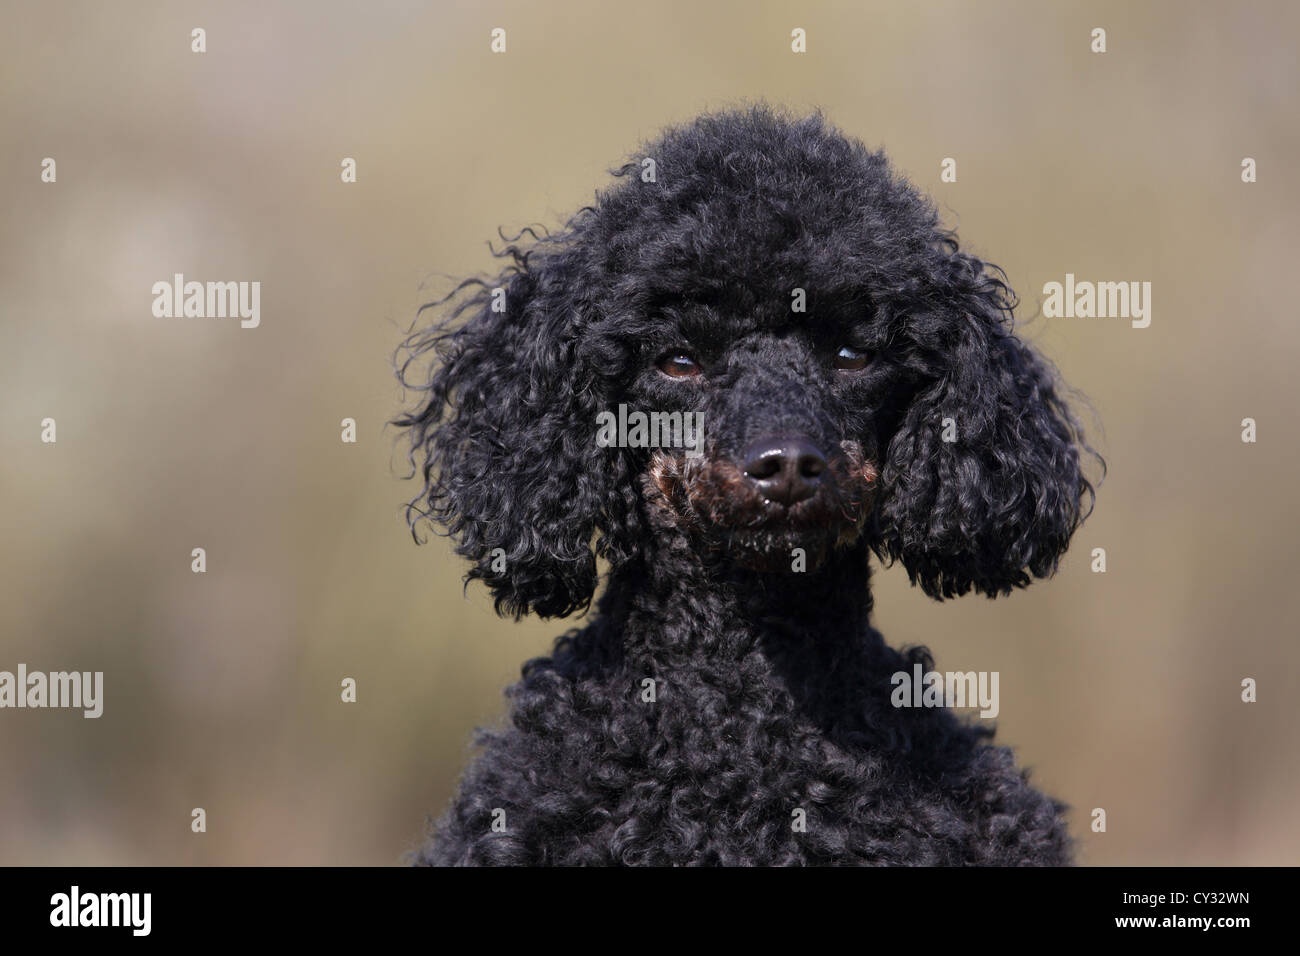 toy poodle - Stock Image